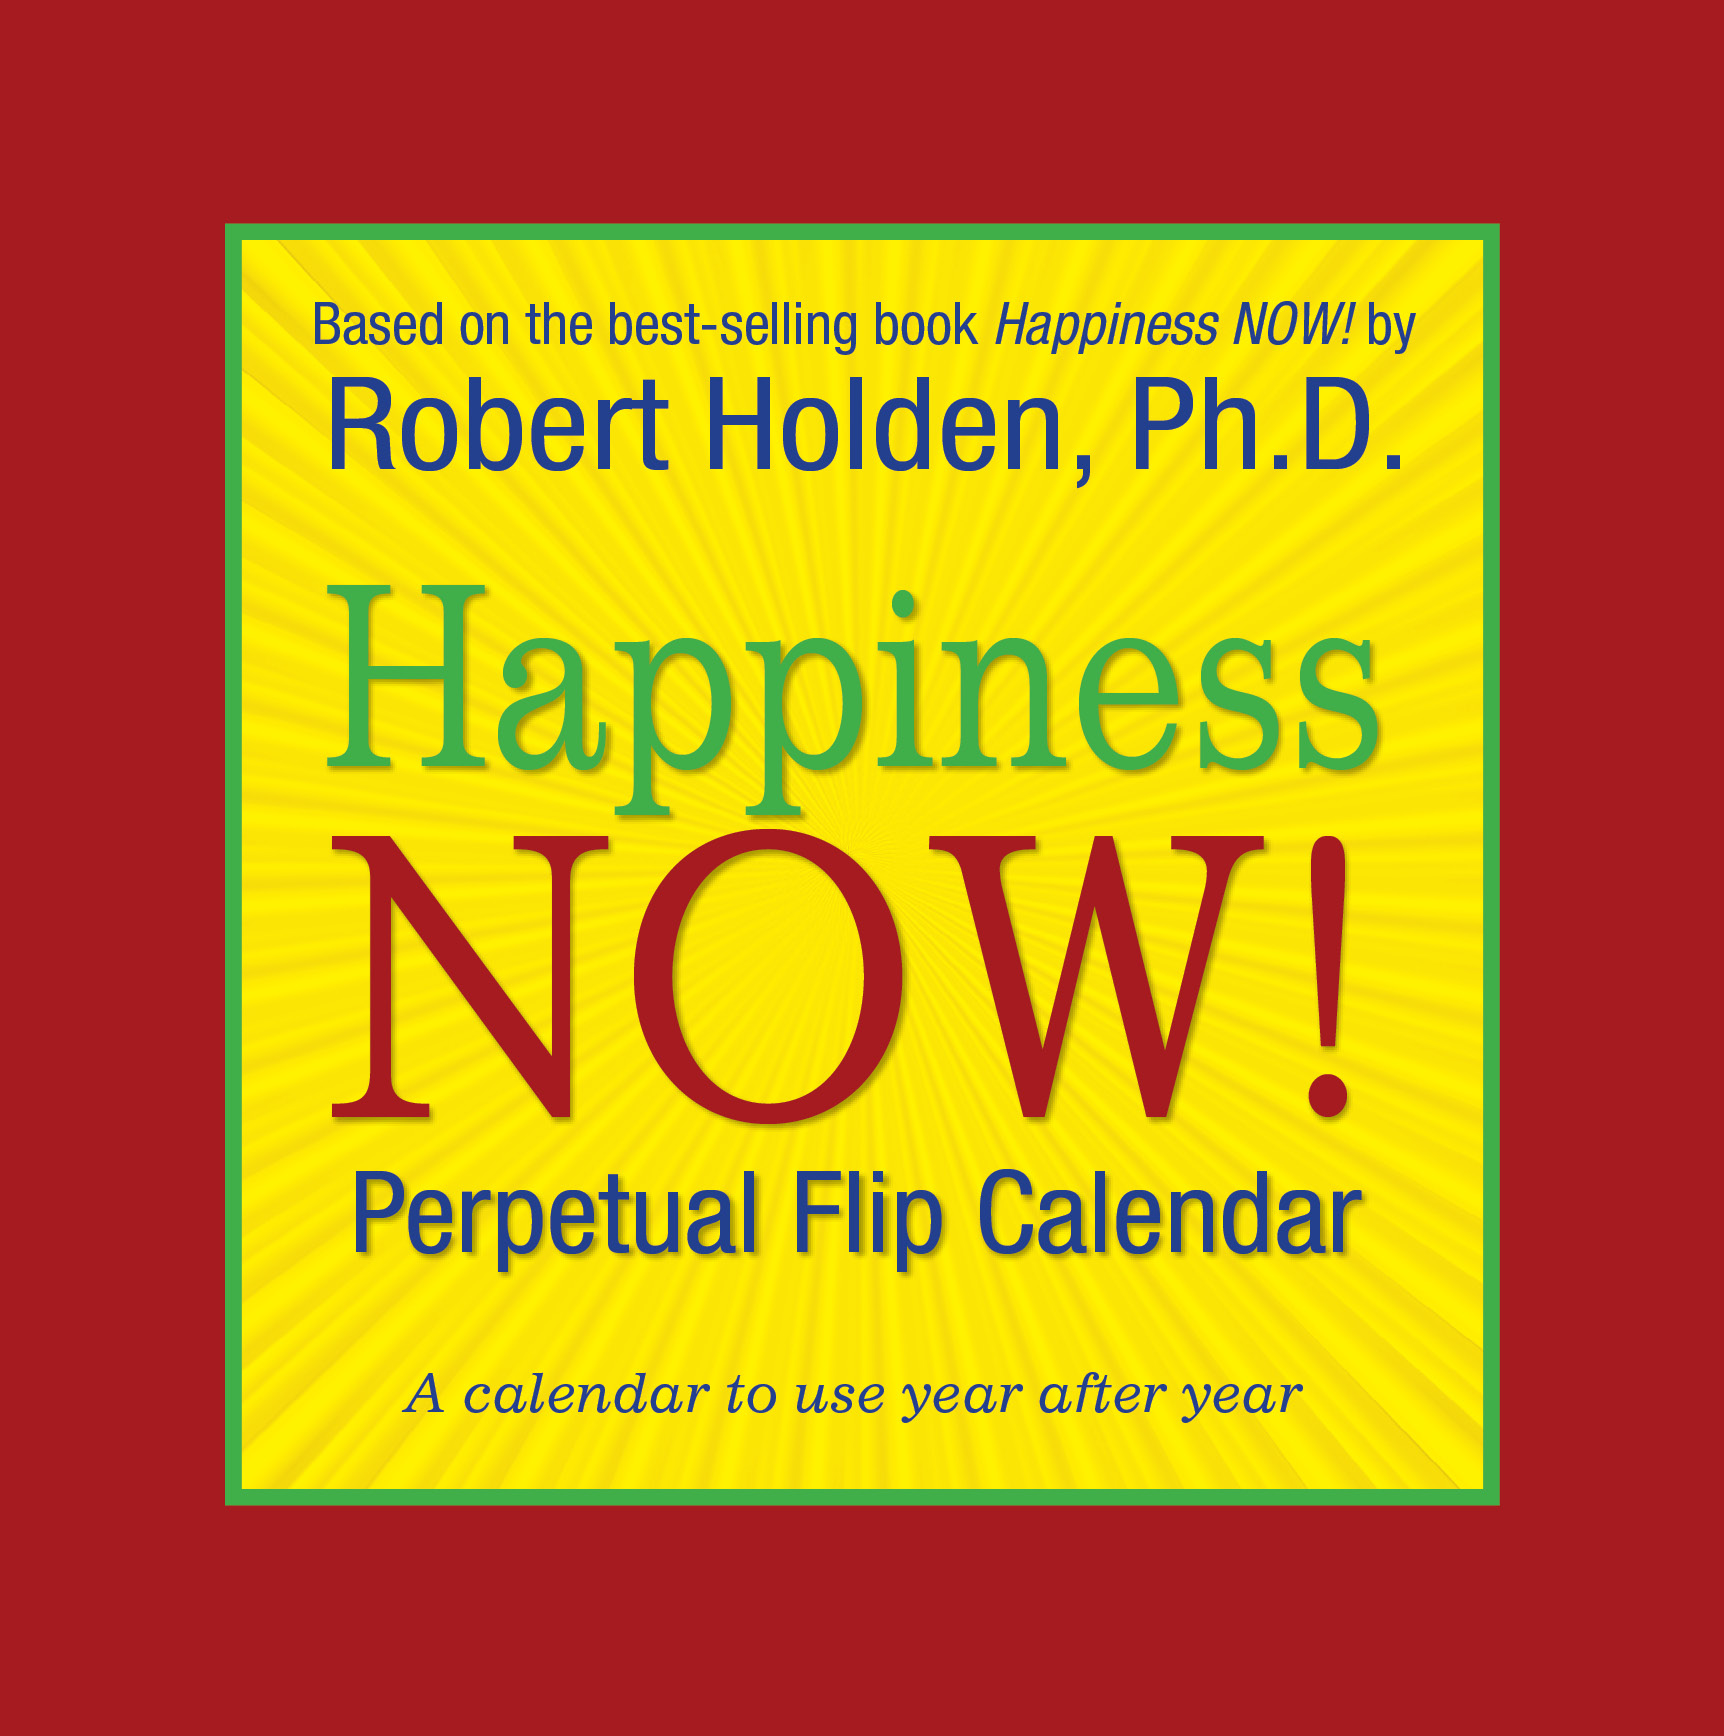 Happiness-Now-Perpetual-Calendar.jpg